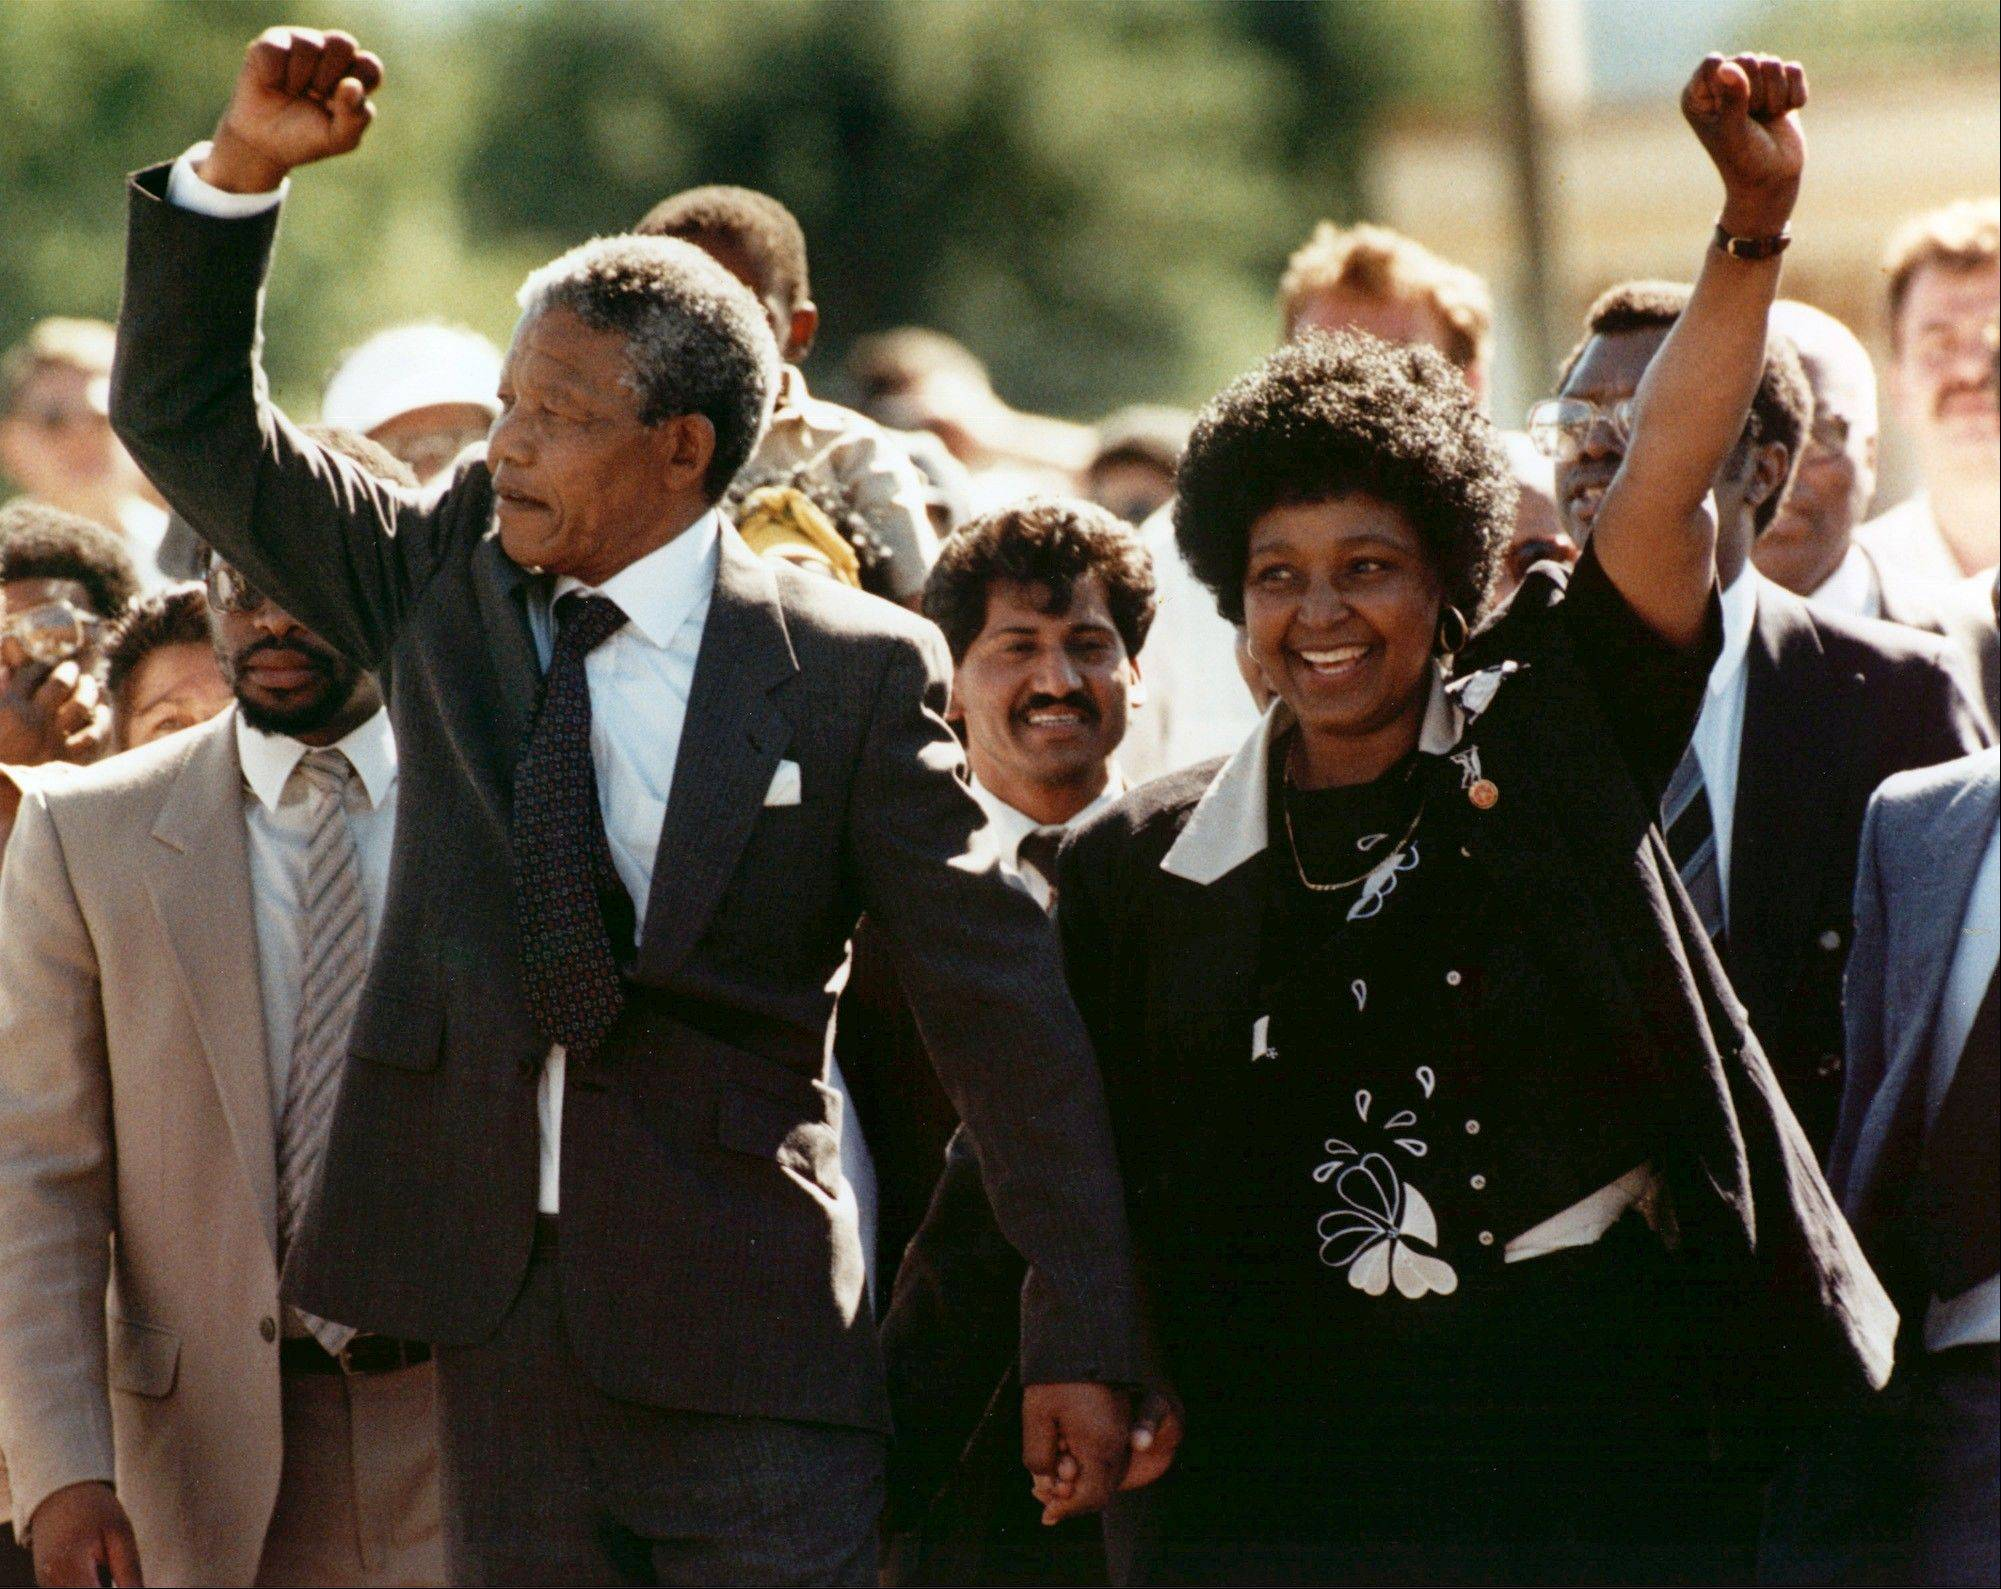 Associated Press/Feb. 11, 1990 Nelson Mandela and his wife, Winnie, raise clenched fists as they walk hand-in-hand upon his release from prison in Cape Town, South Africa.